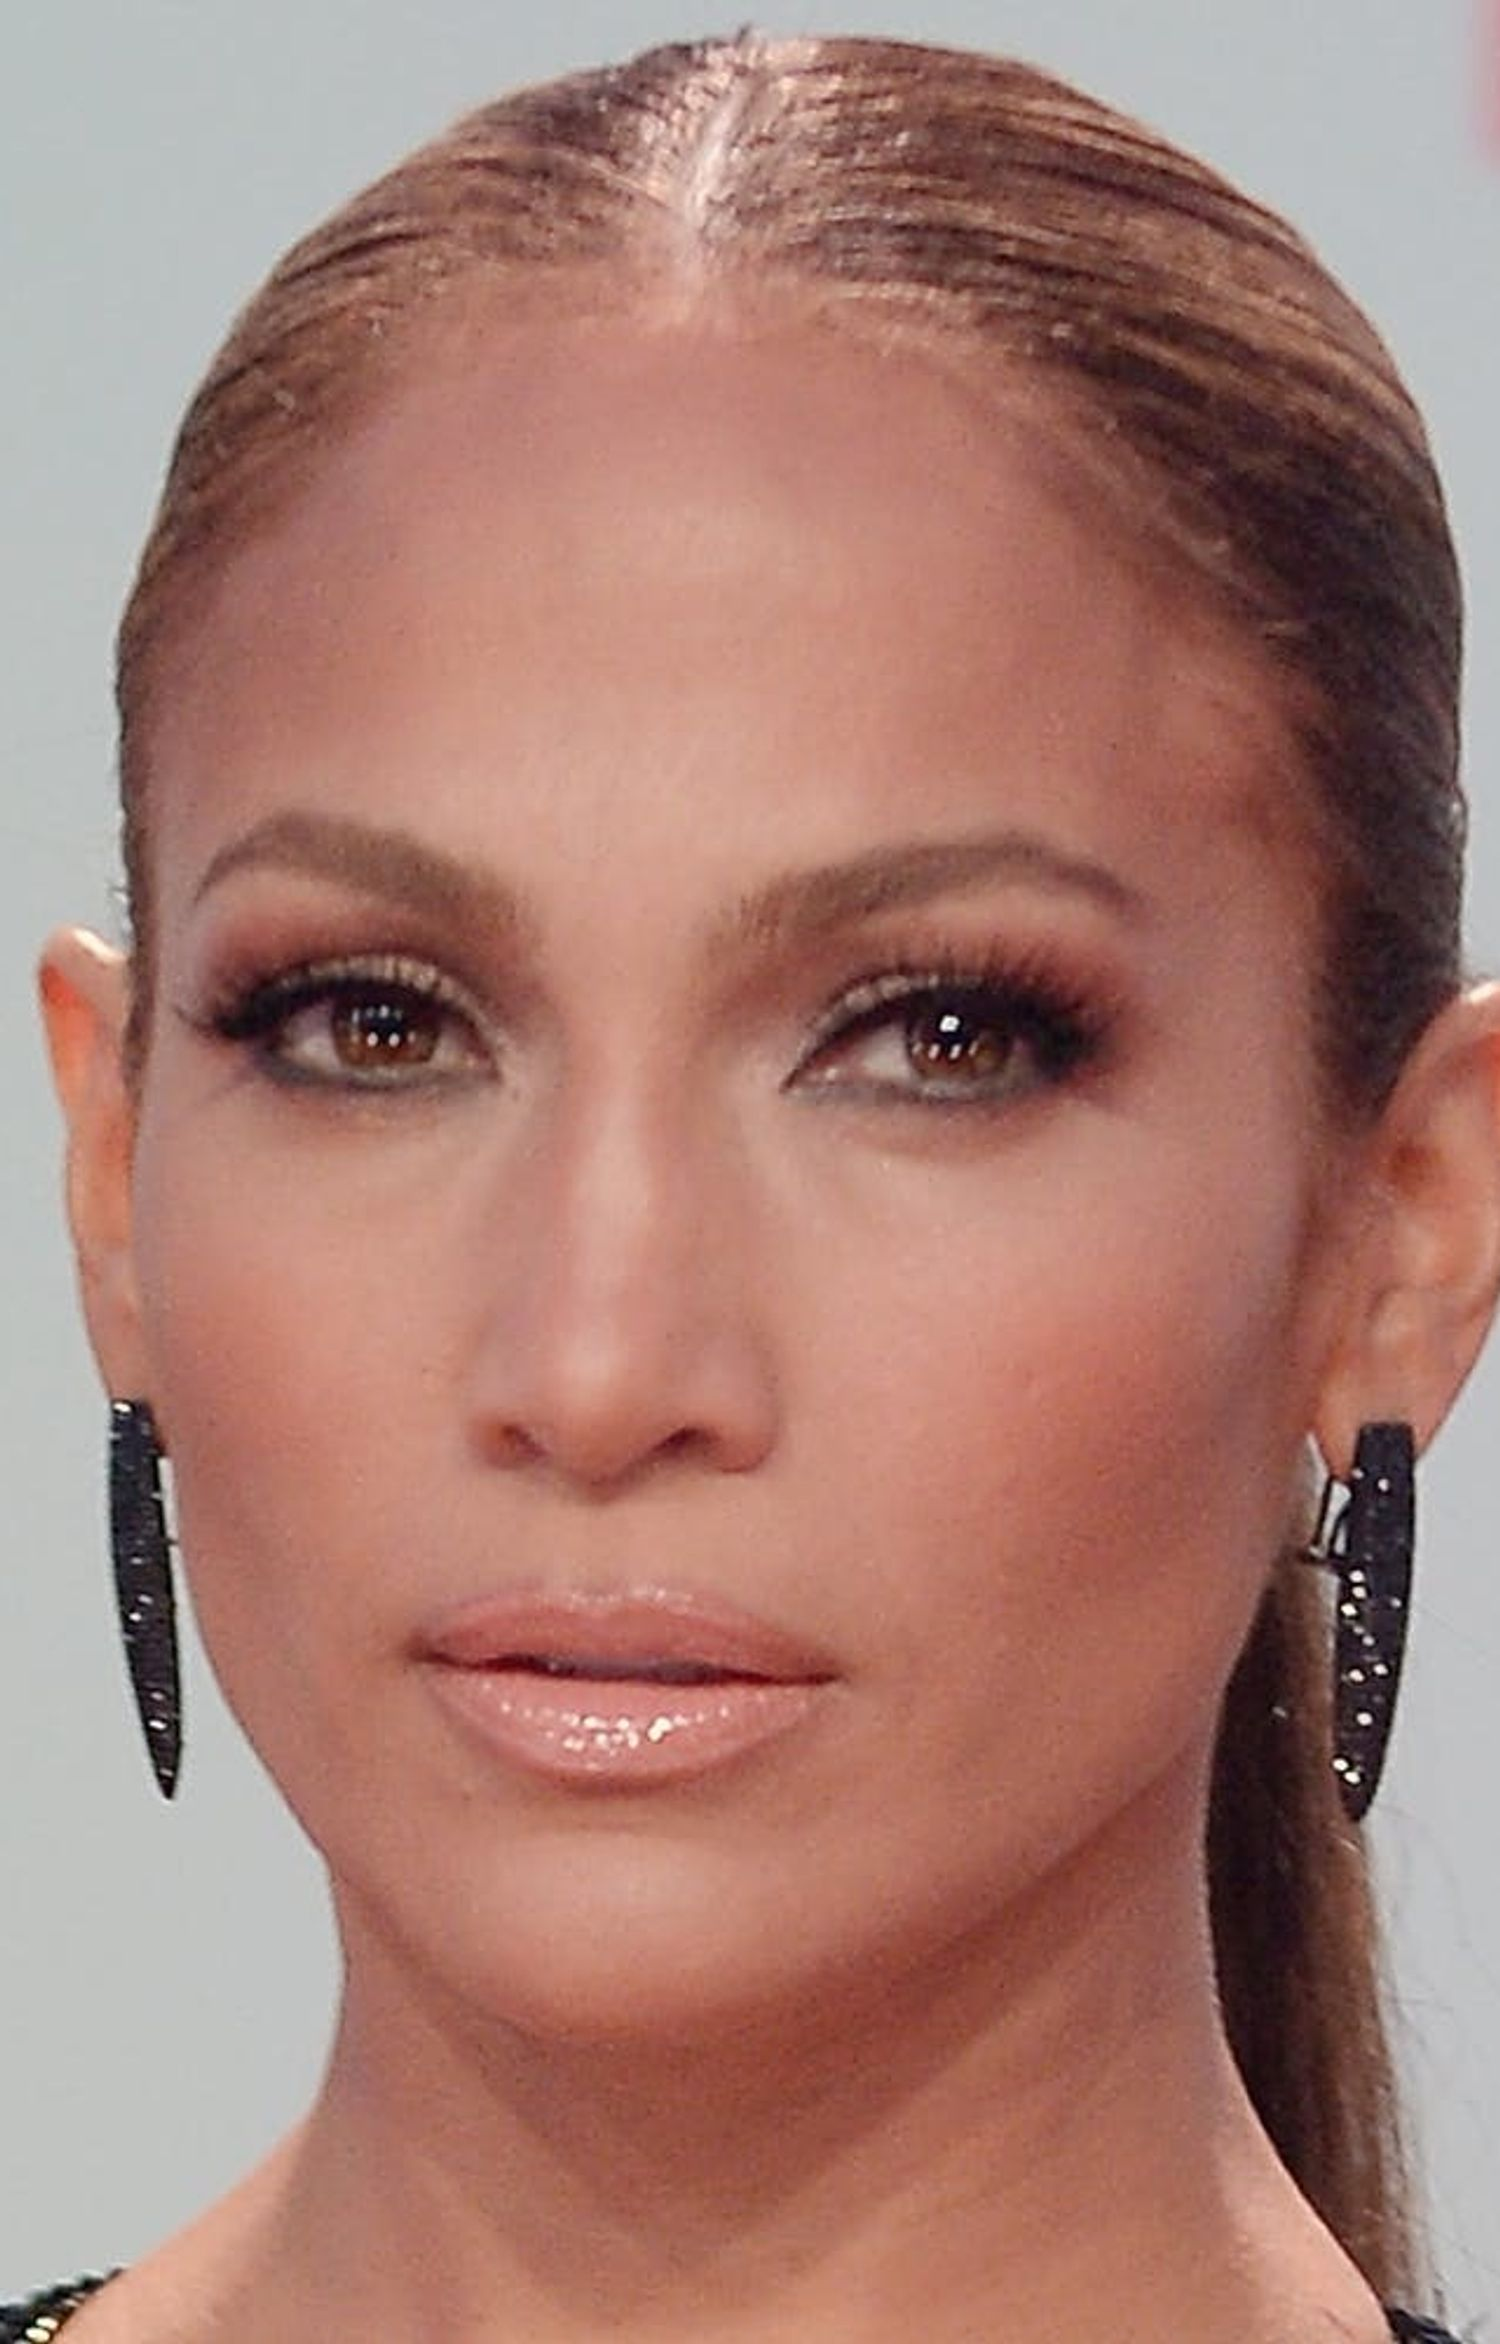 Jennifer Lopez, 51, shows off her incredible figure in